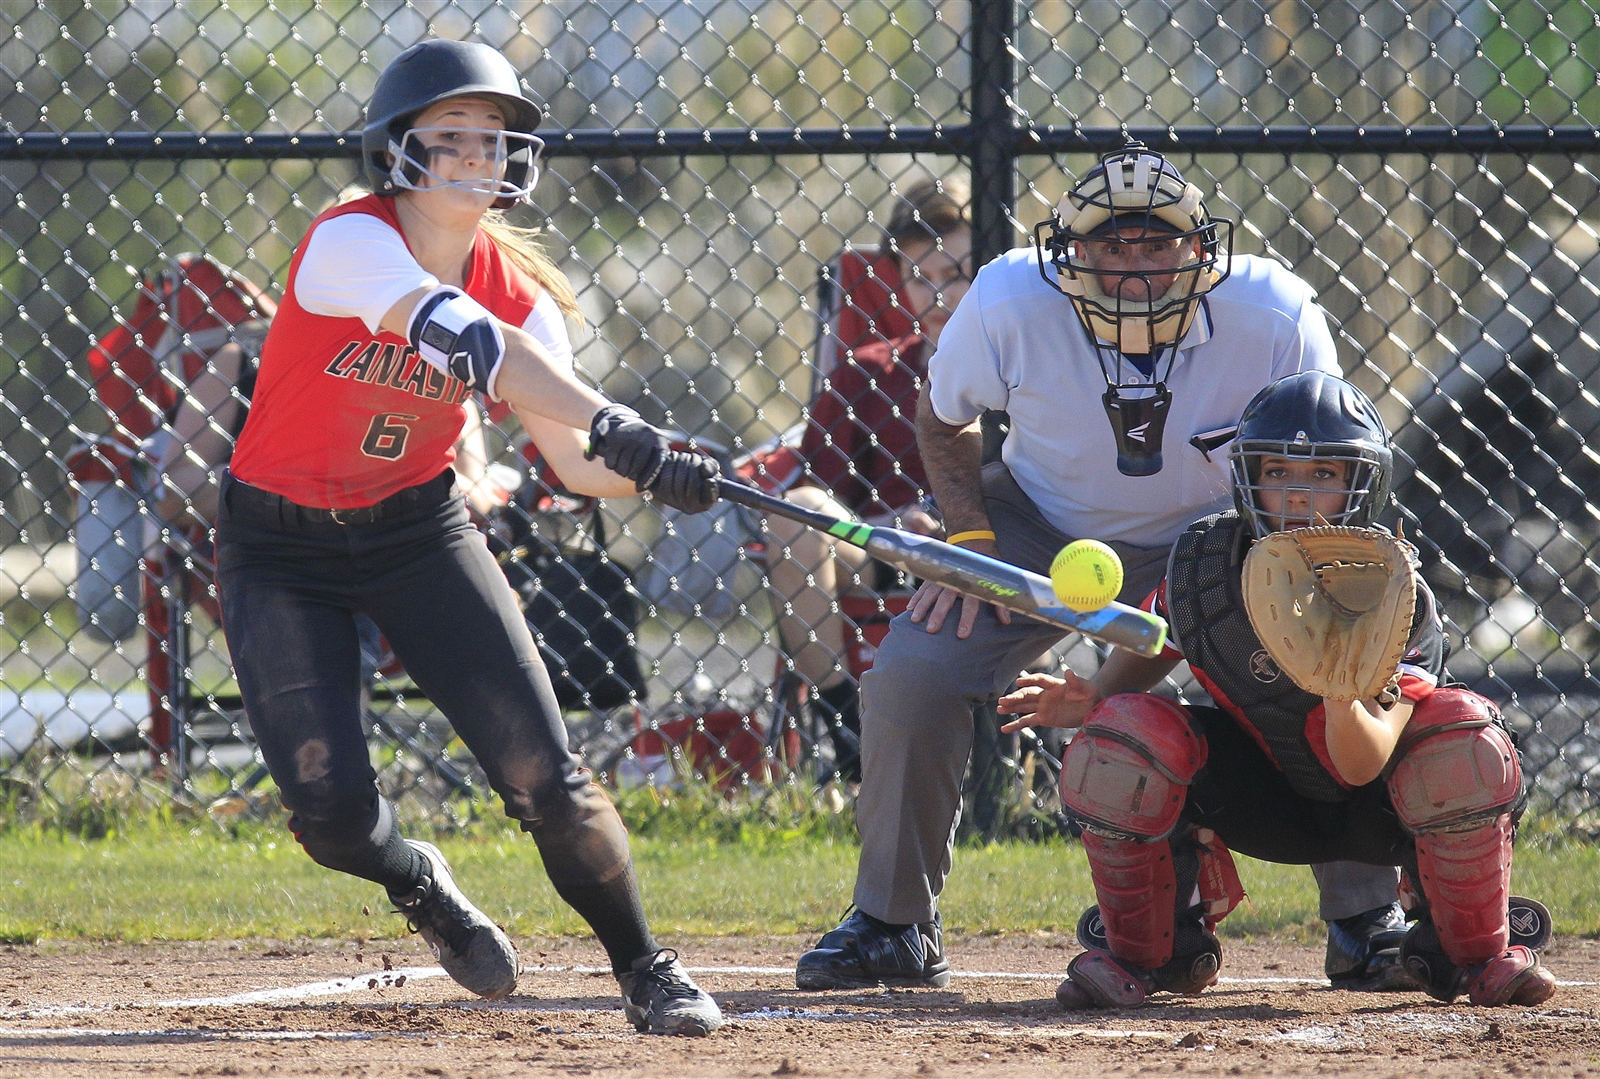 Lancaster's Kara Paradowski hits against Clarence during first inning of its 4-3 win. (Harry Scull Jr./Buffalo News)